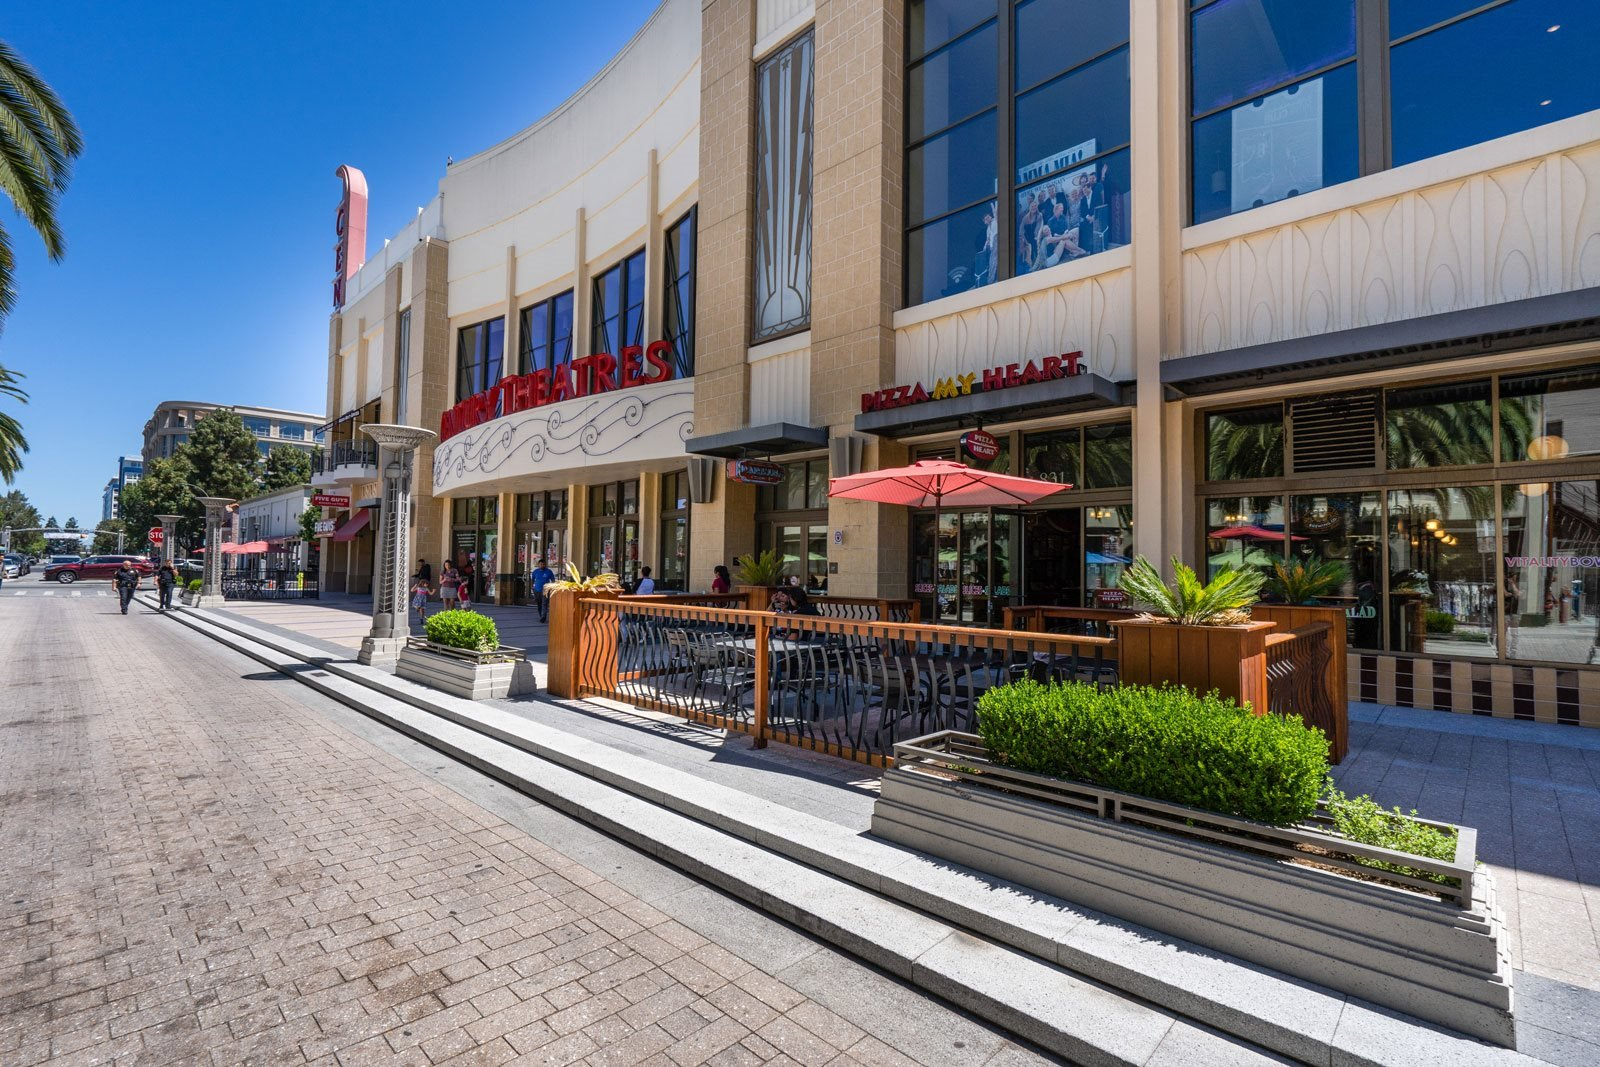 Endless Options for Shopping Exploring and Entertainment at The Marston by Windsor, 825 Marshall Street, CA